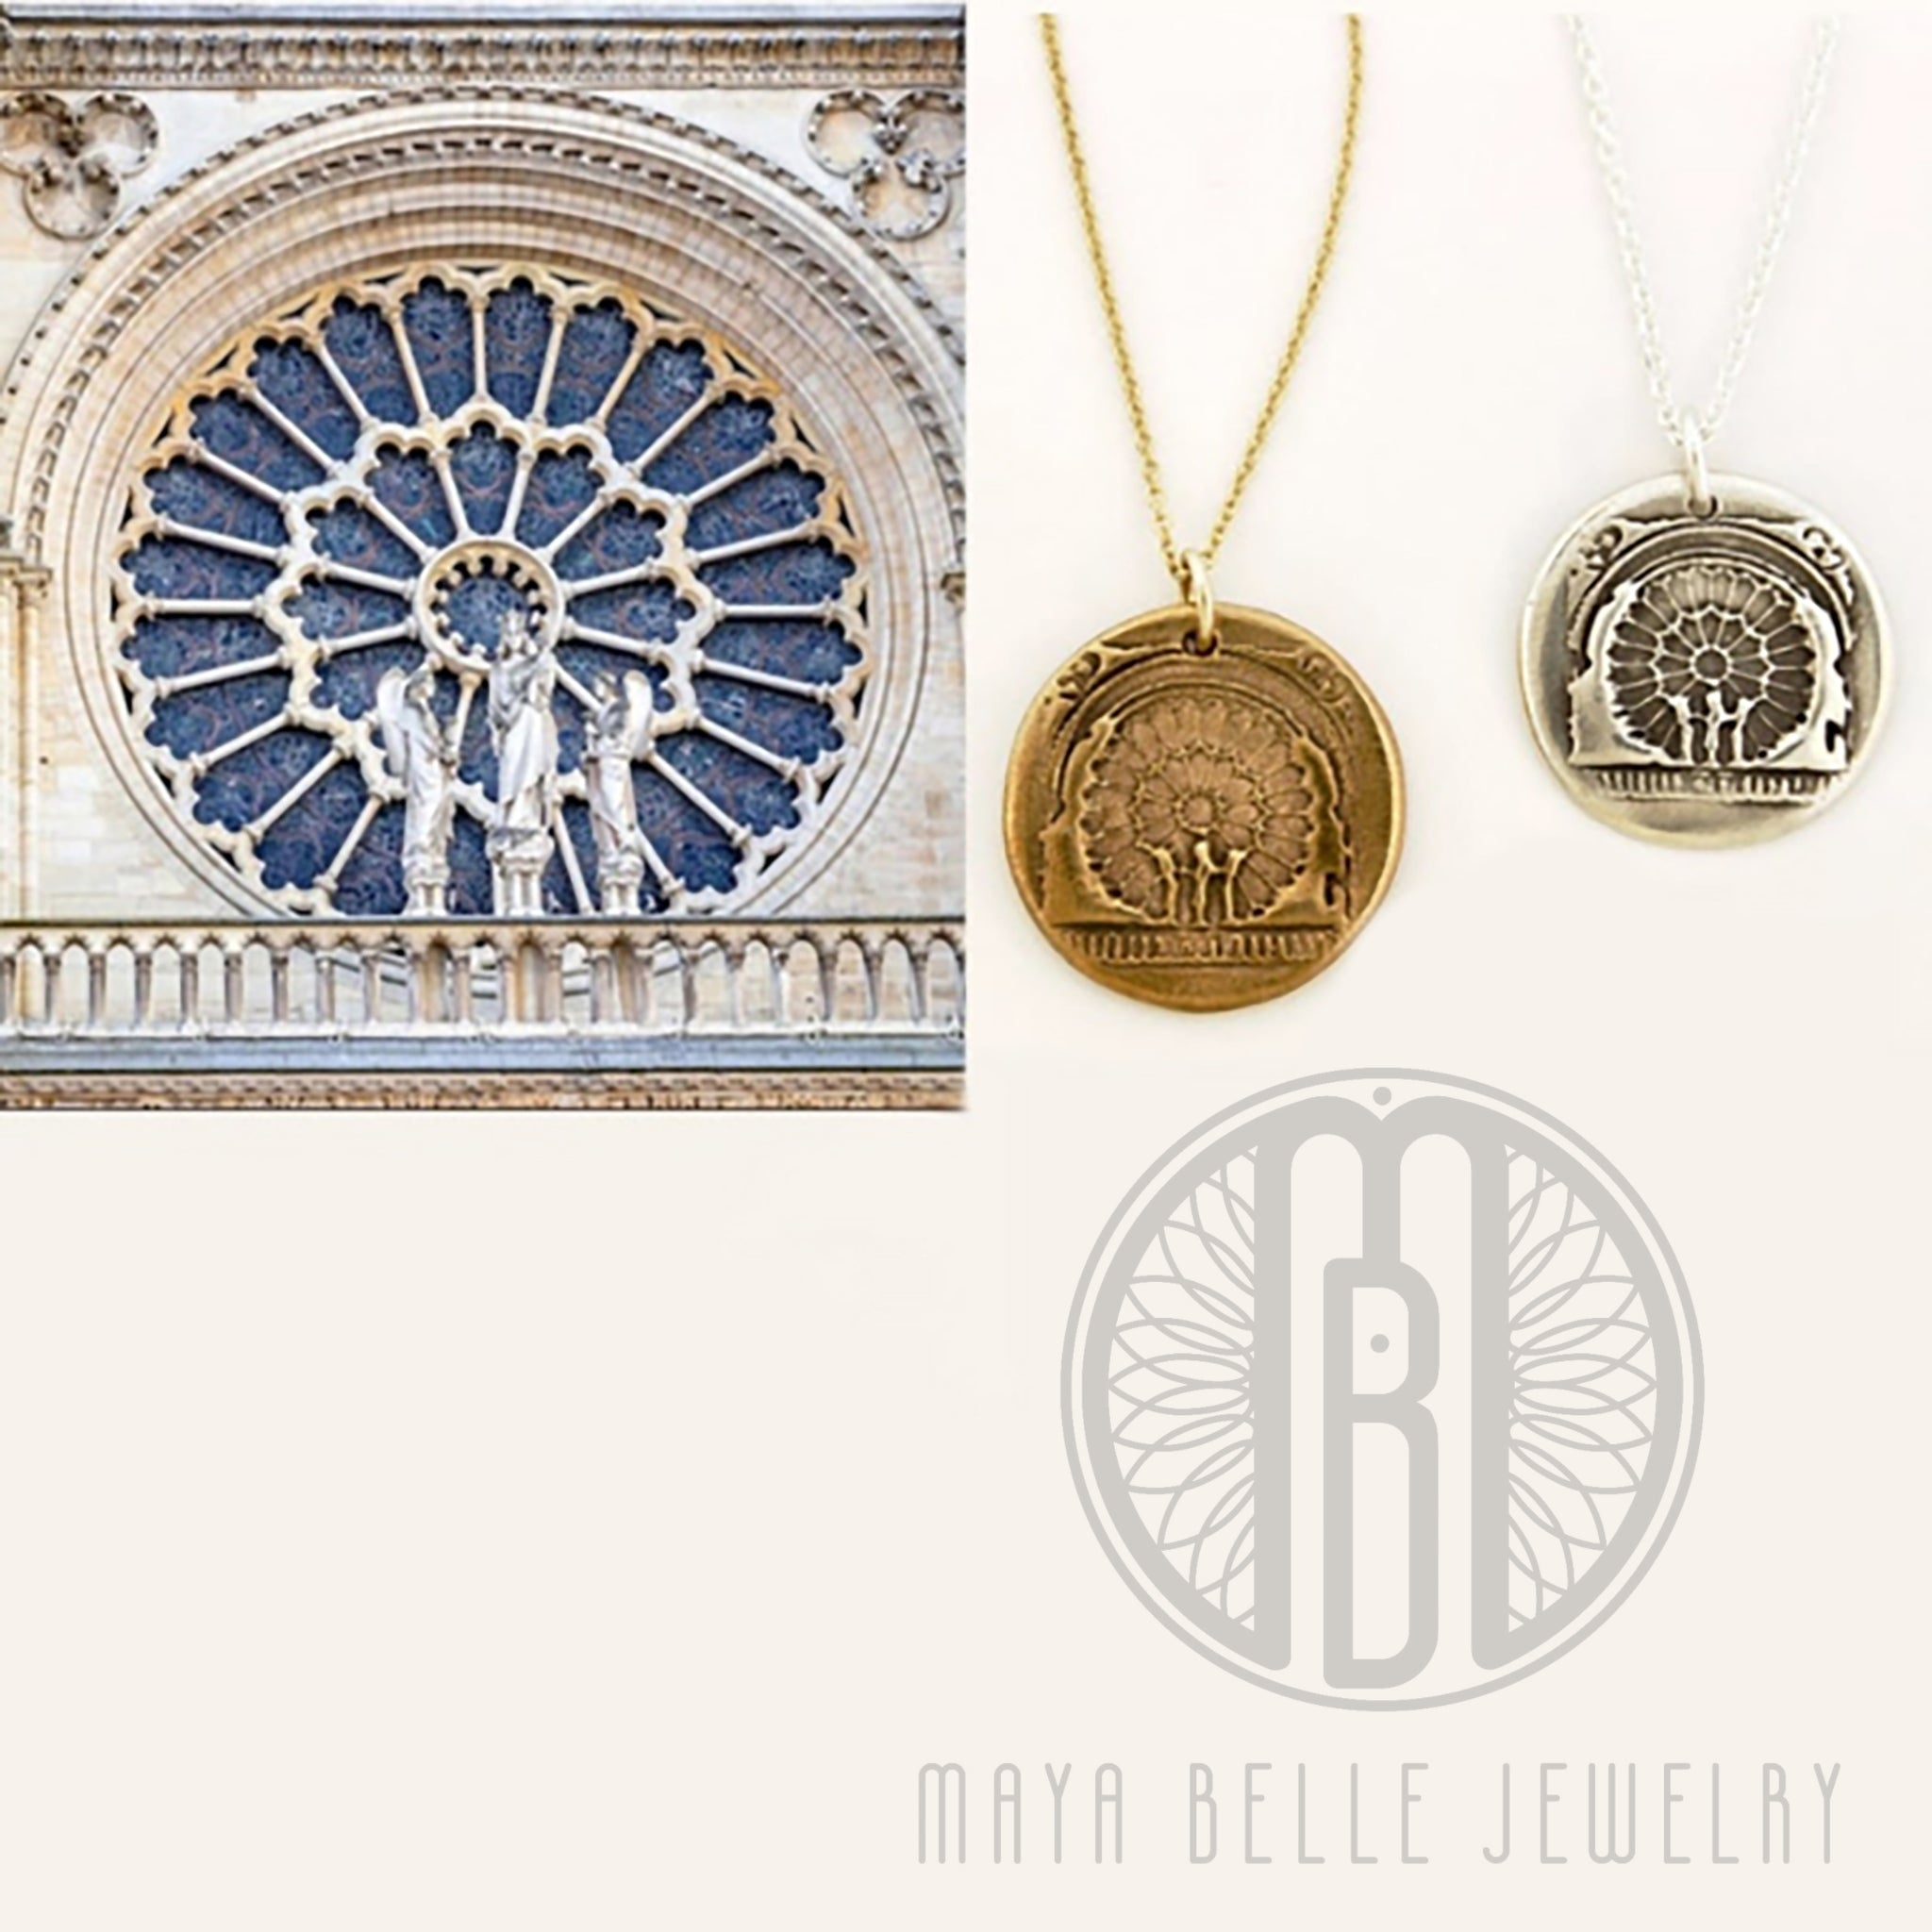 West Rose Window of Notre Dame - Maya Belle Jewelry